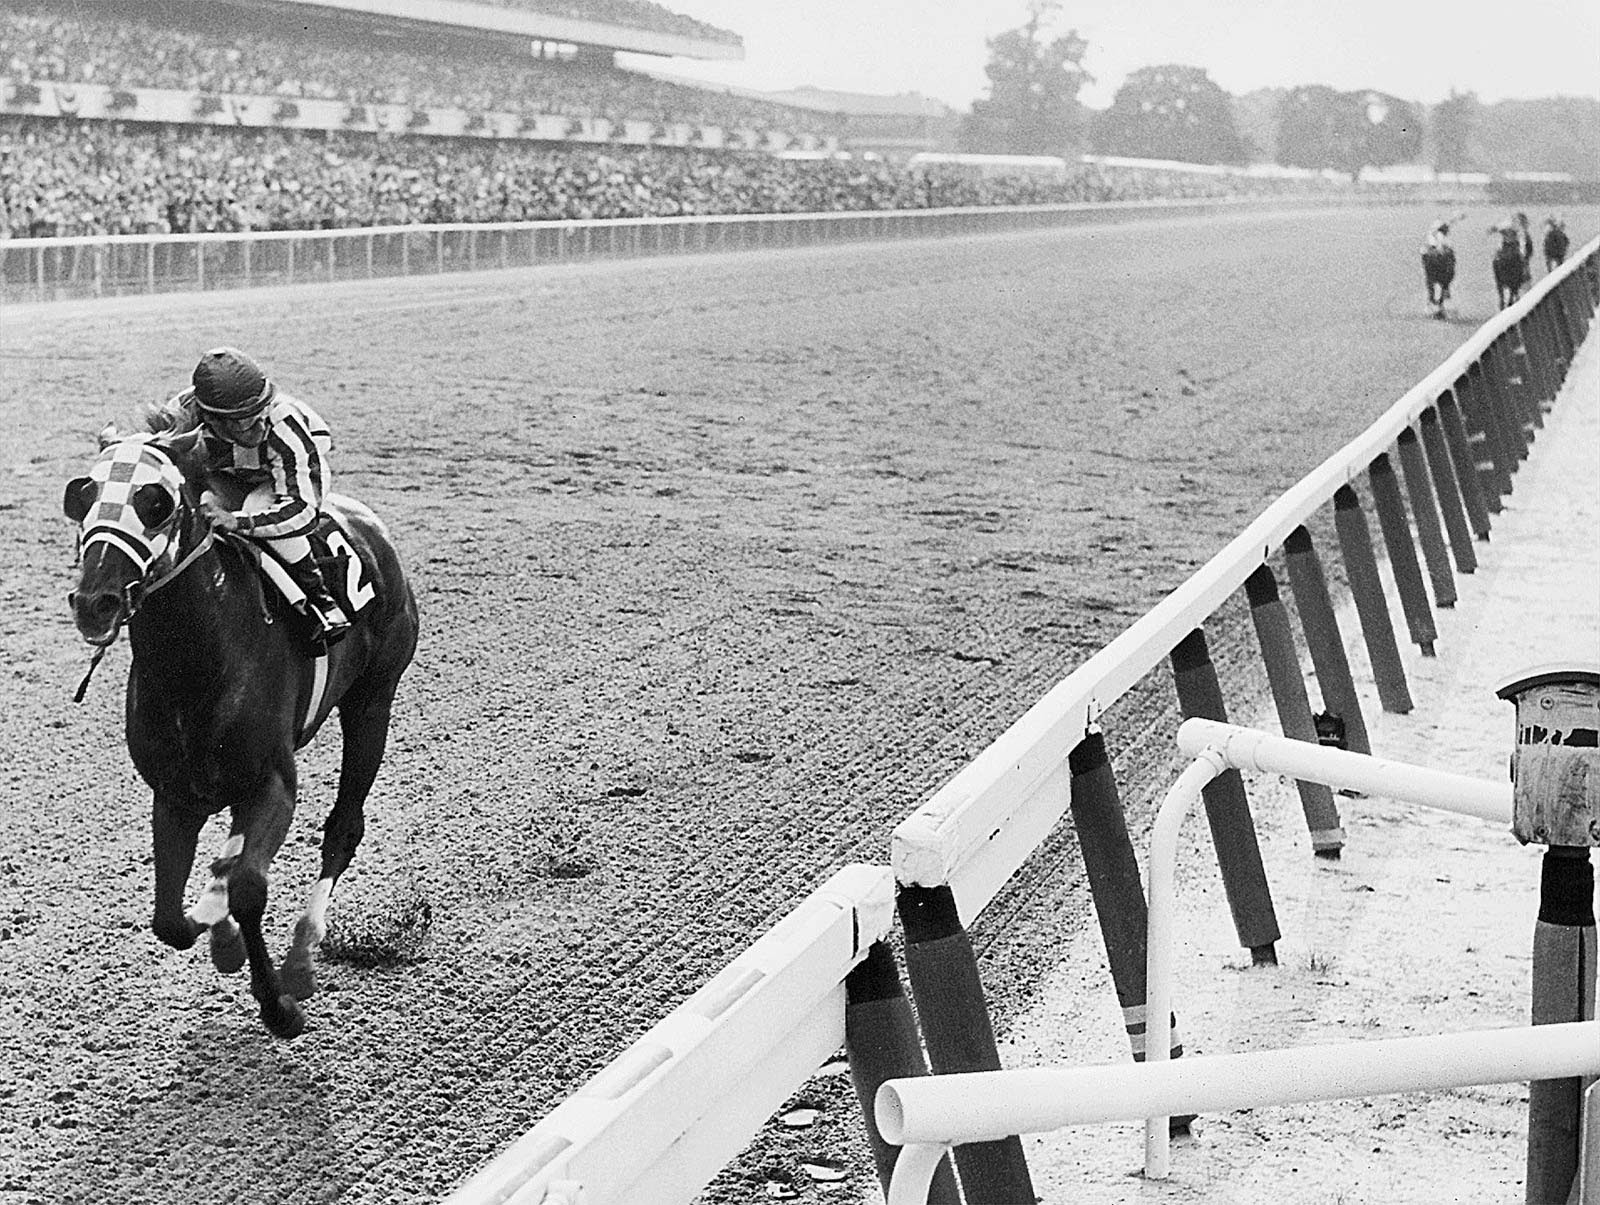 c5780726c33c3c The 1973 Belmont Stakes was the 105th running of the Belmont Stakes and the  final race in Secretariat's Triple Crown run. A record crowd of 69,138 saw  him ...